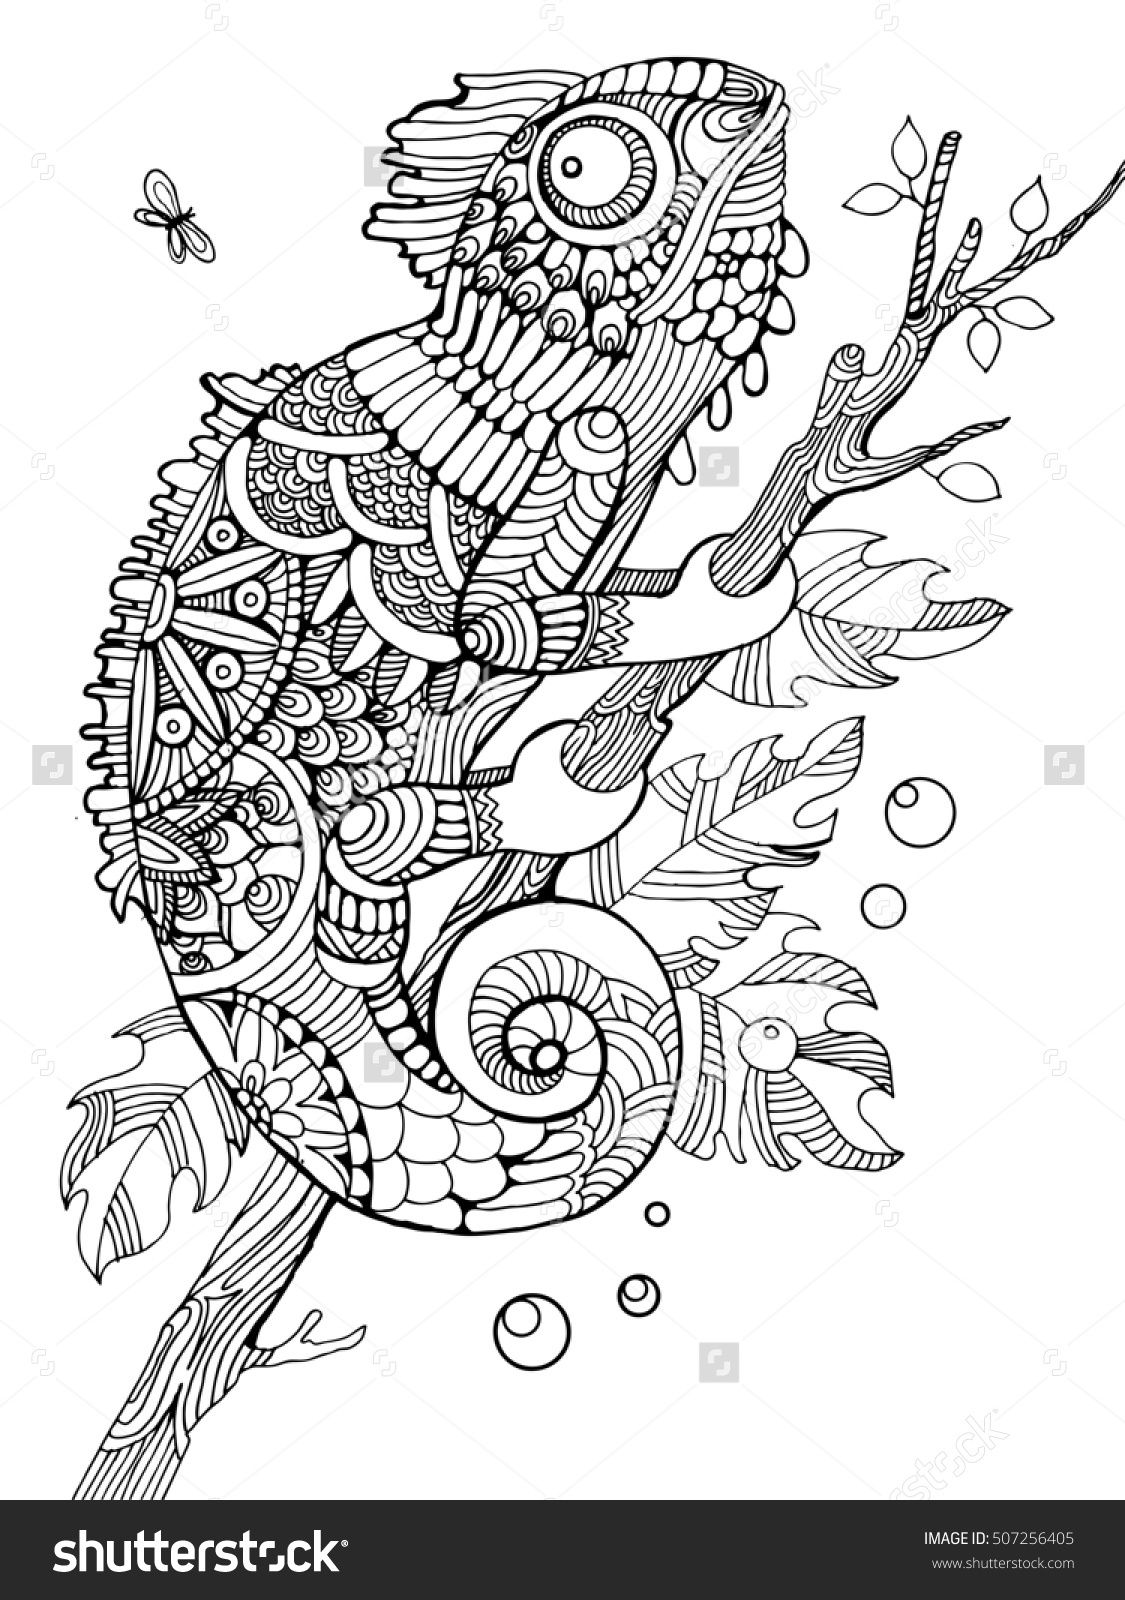 coloring pages for adults chameleon free book chameleon chameleons lizards adult coloring for pages adults coloring chameleon